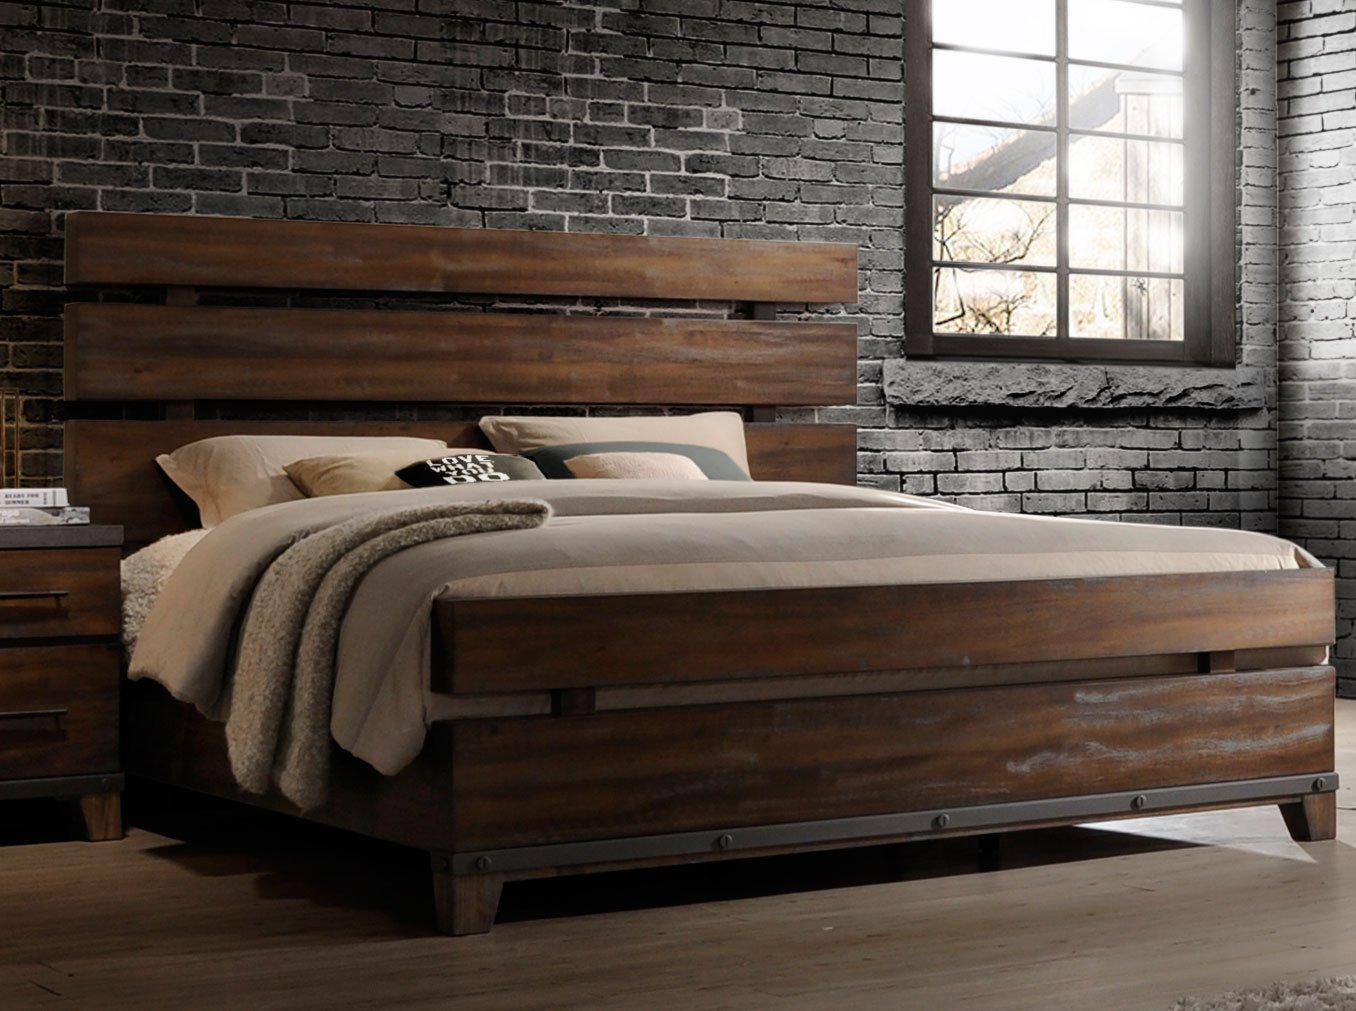 Best Modern Rustic Brown 6 Piece King Bedroom Set Forge Rc Willey Furniture Store With Pictures